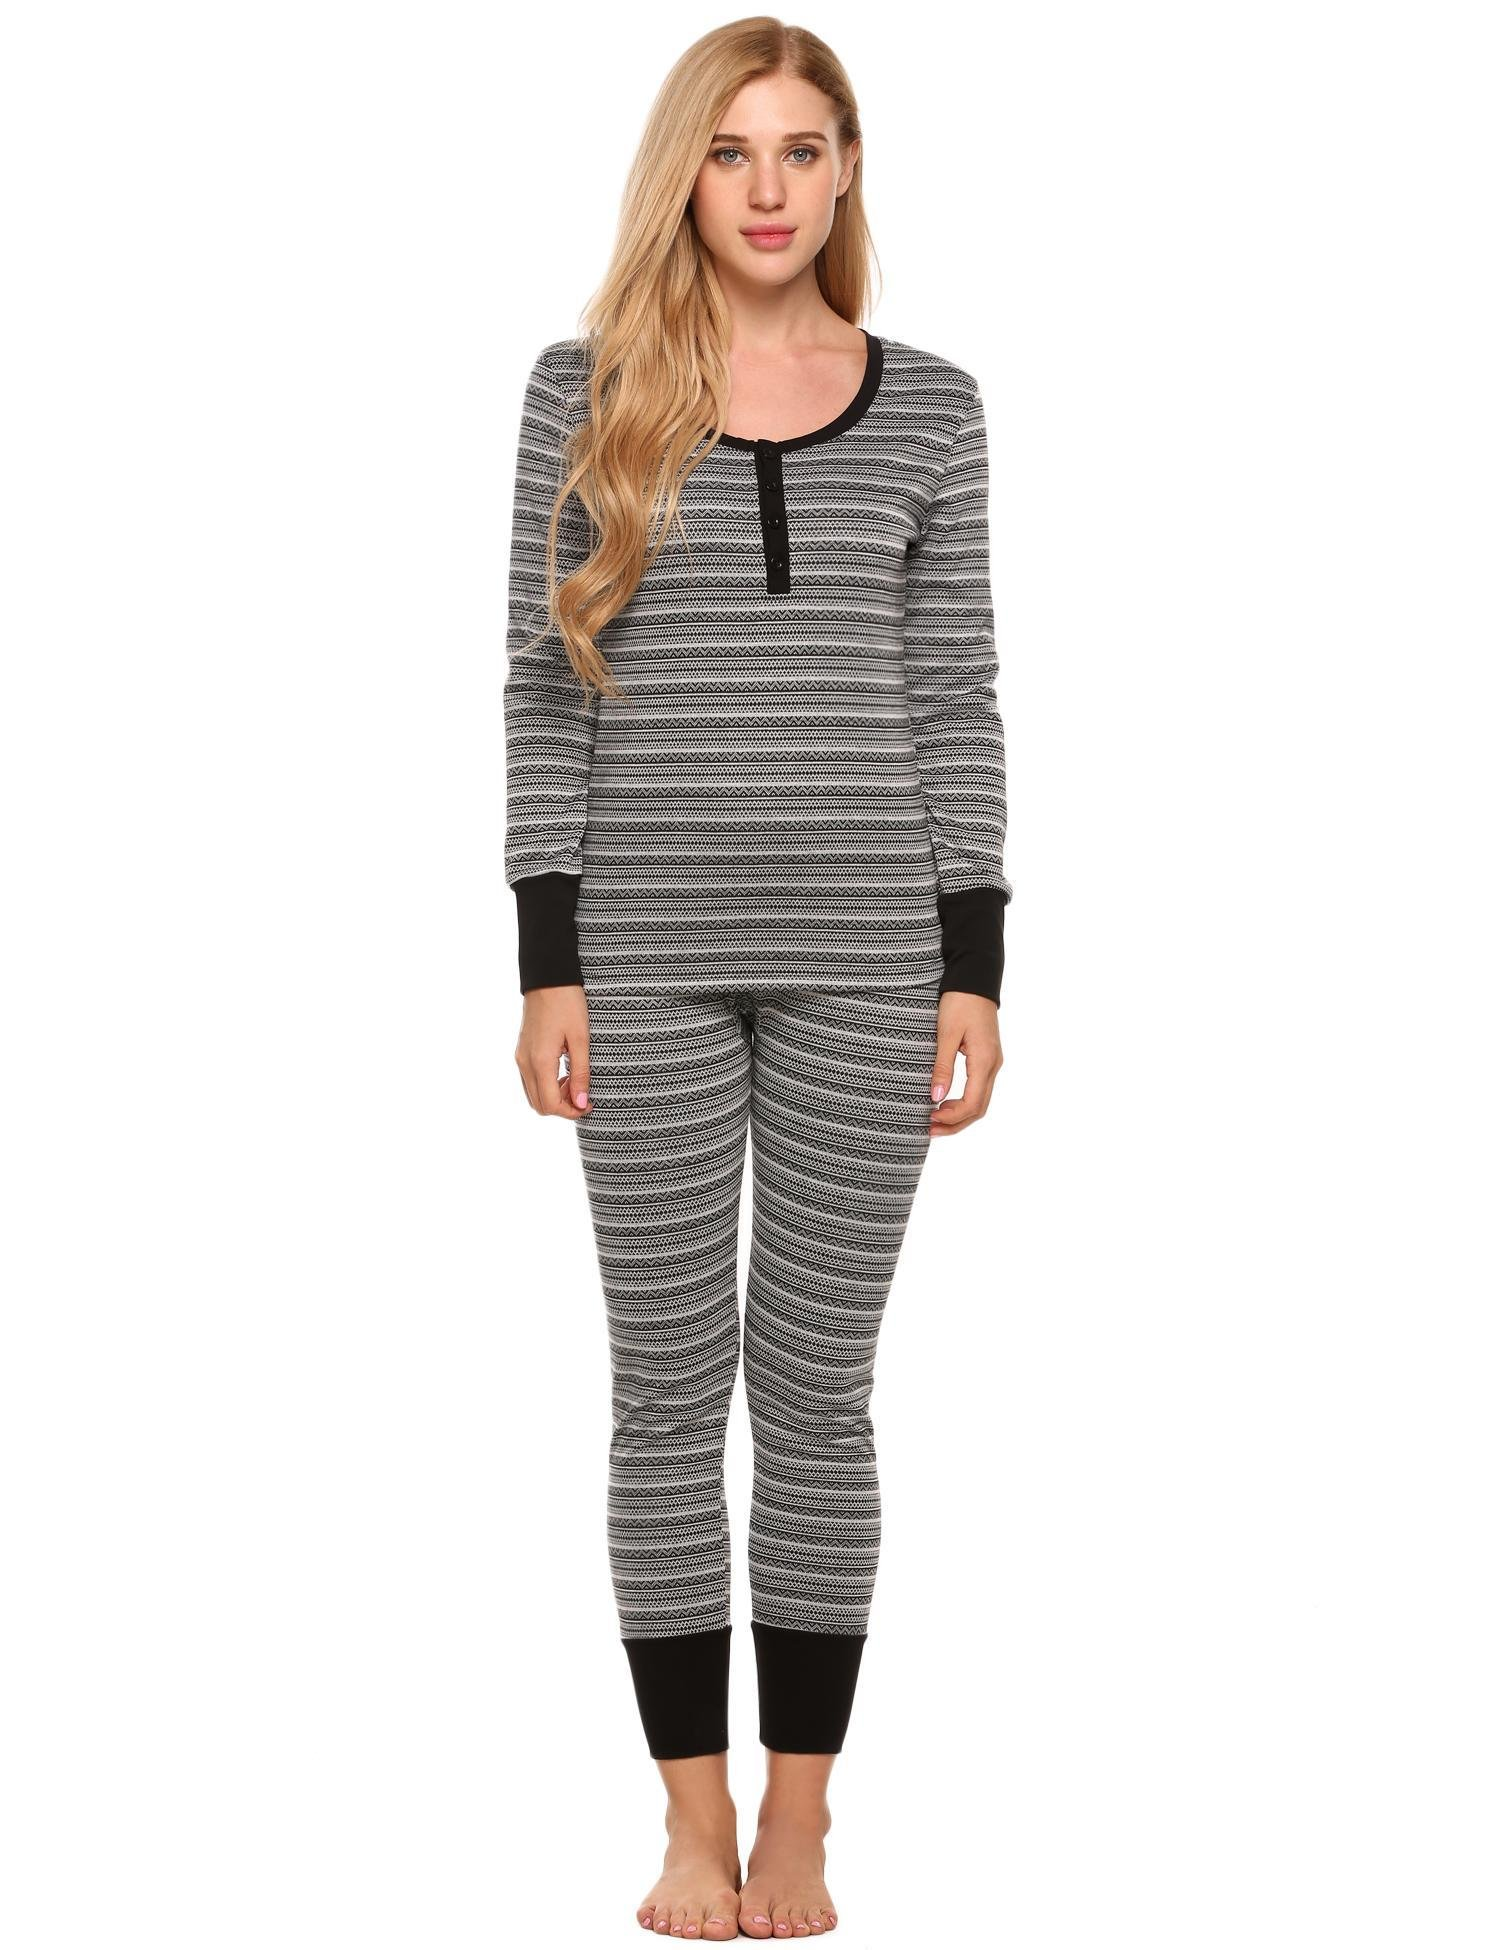 L'amore Women's Long Sleeve Thermal Pajamas Set Contrast Knitted Patterned Pjs(Black Pattern, XXL)